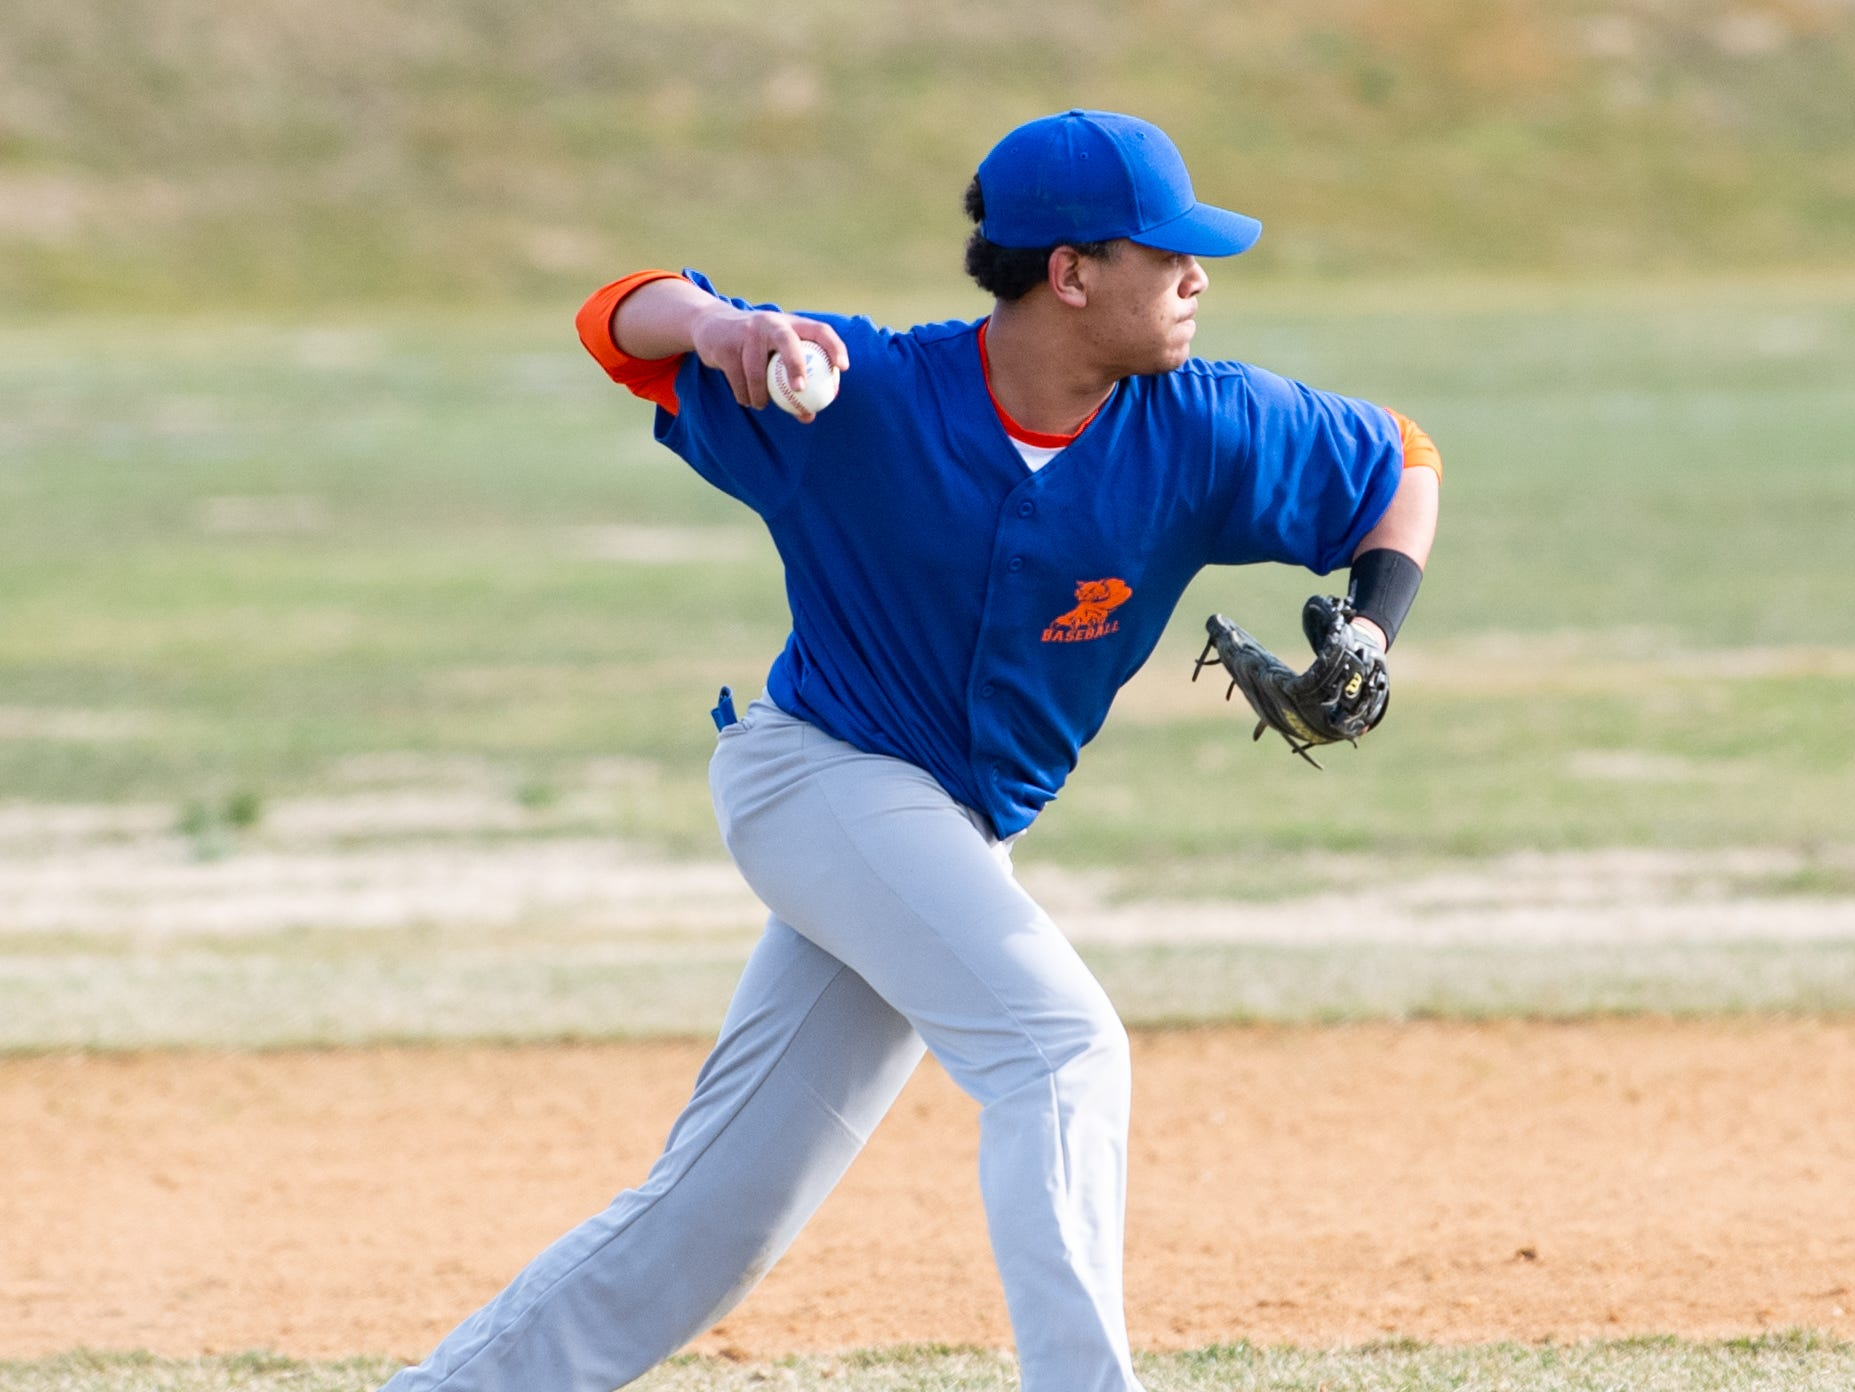 Erick Polanco (17) throws to first base during York High's scrimmage against Steel High, March 20, 2019 at Small Athletic Field.